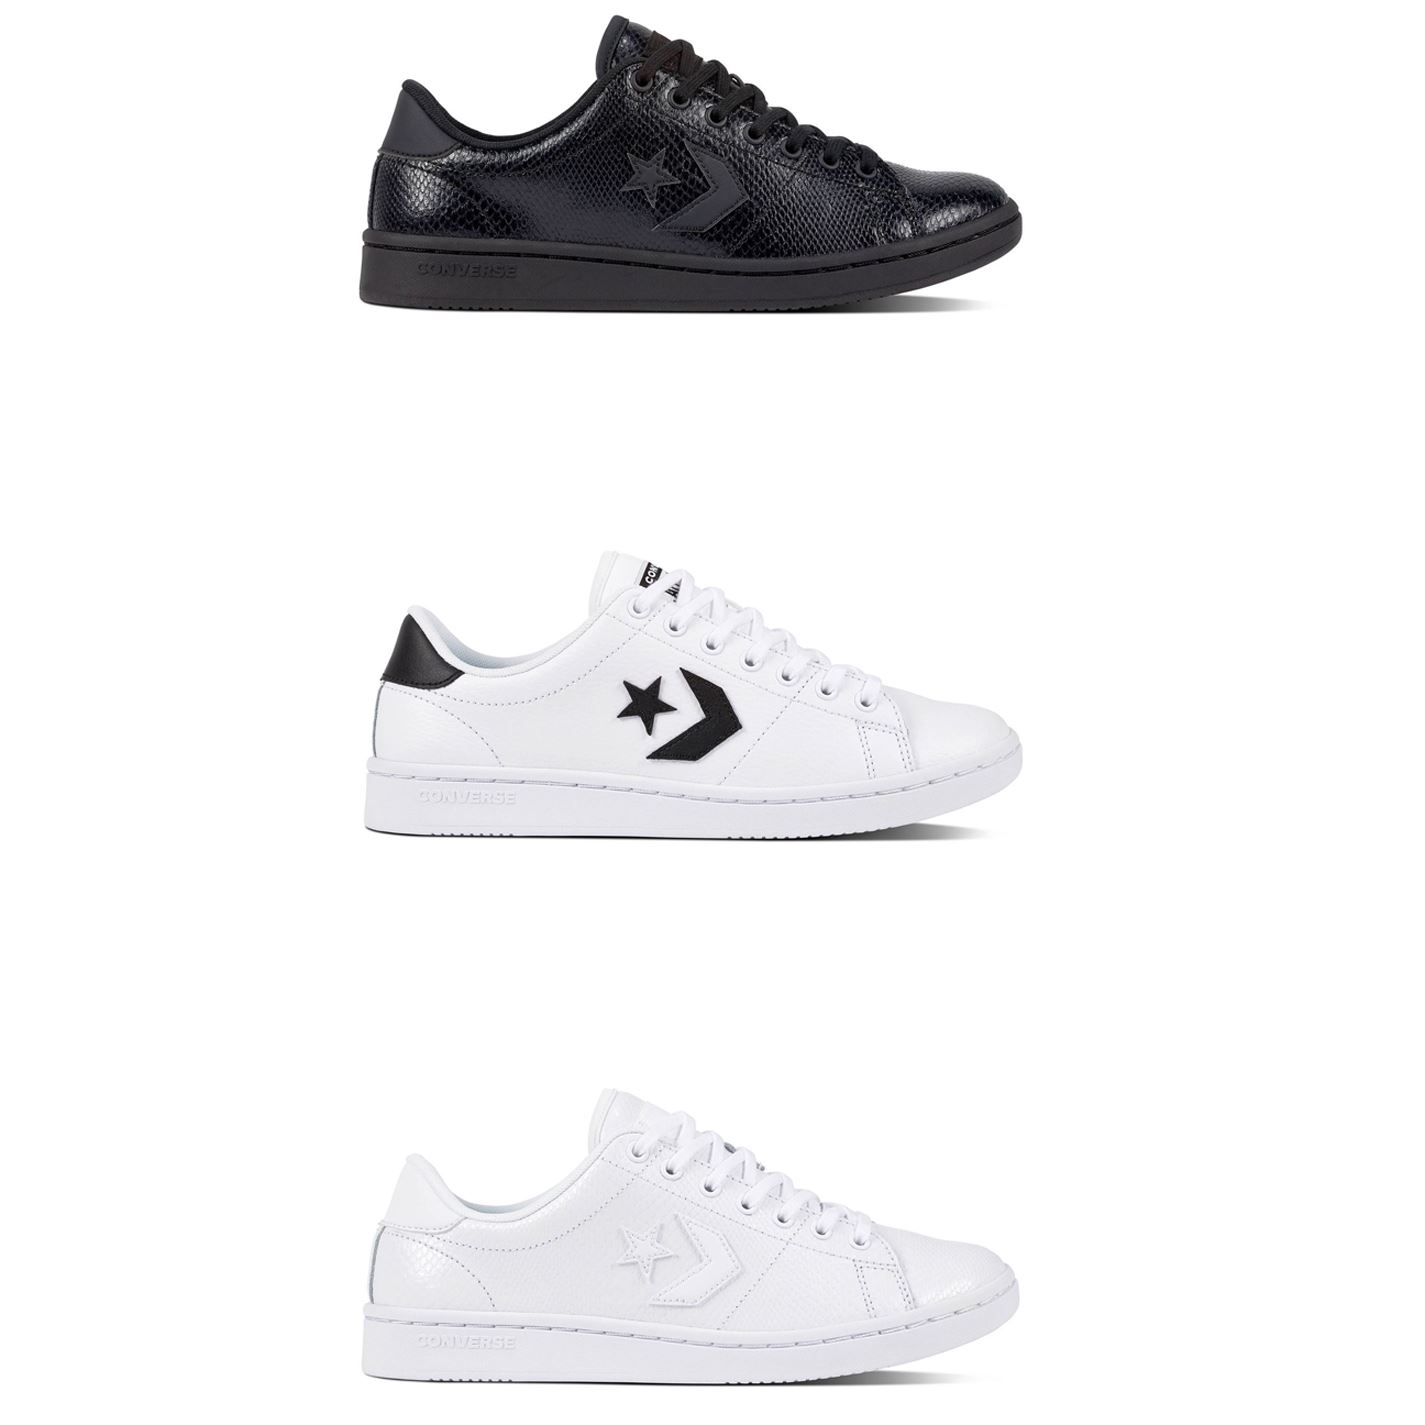 2f5f2a56c0f Details about Converse All Star All Court Trainers Womens Athleisure  Sneakers Shoes Footwear